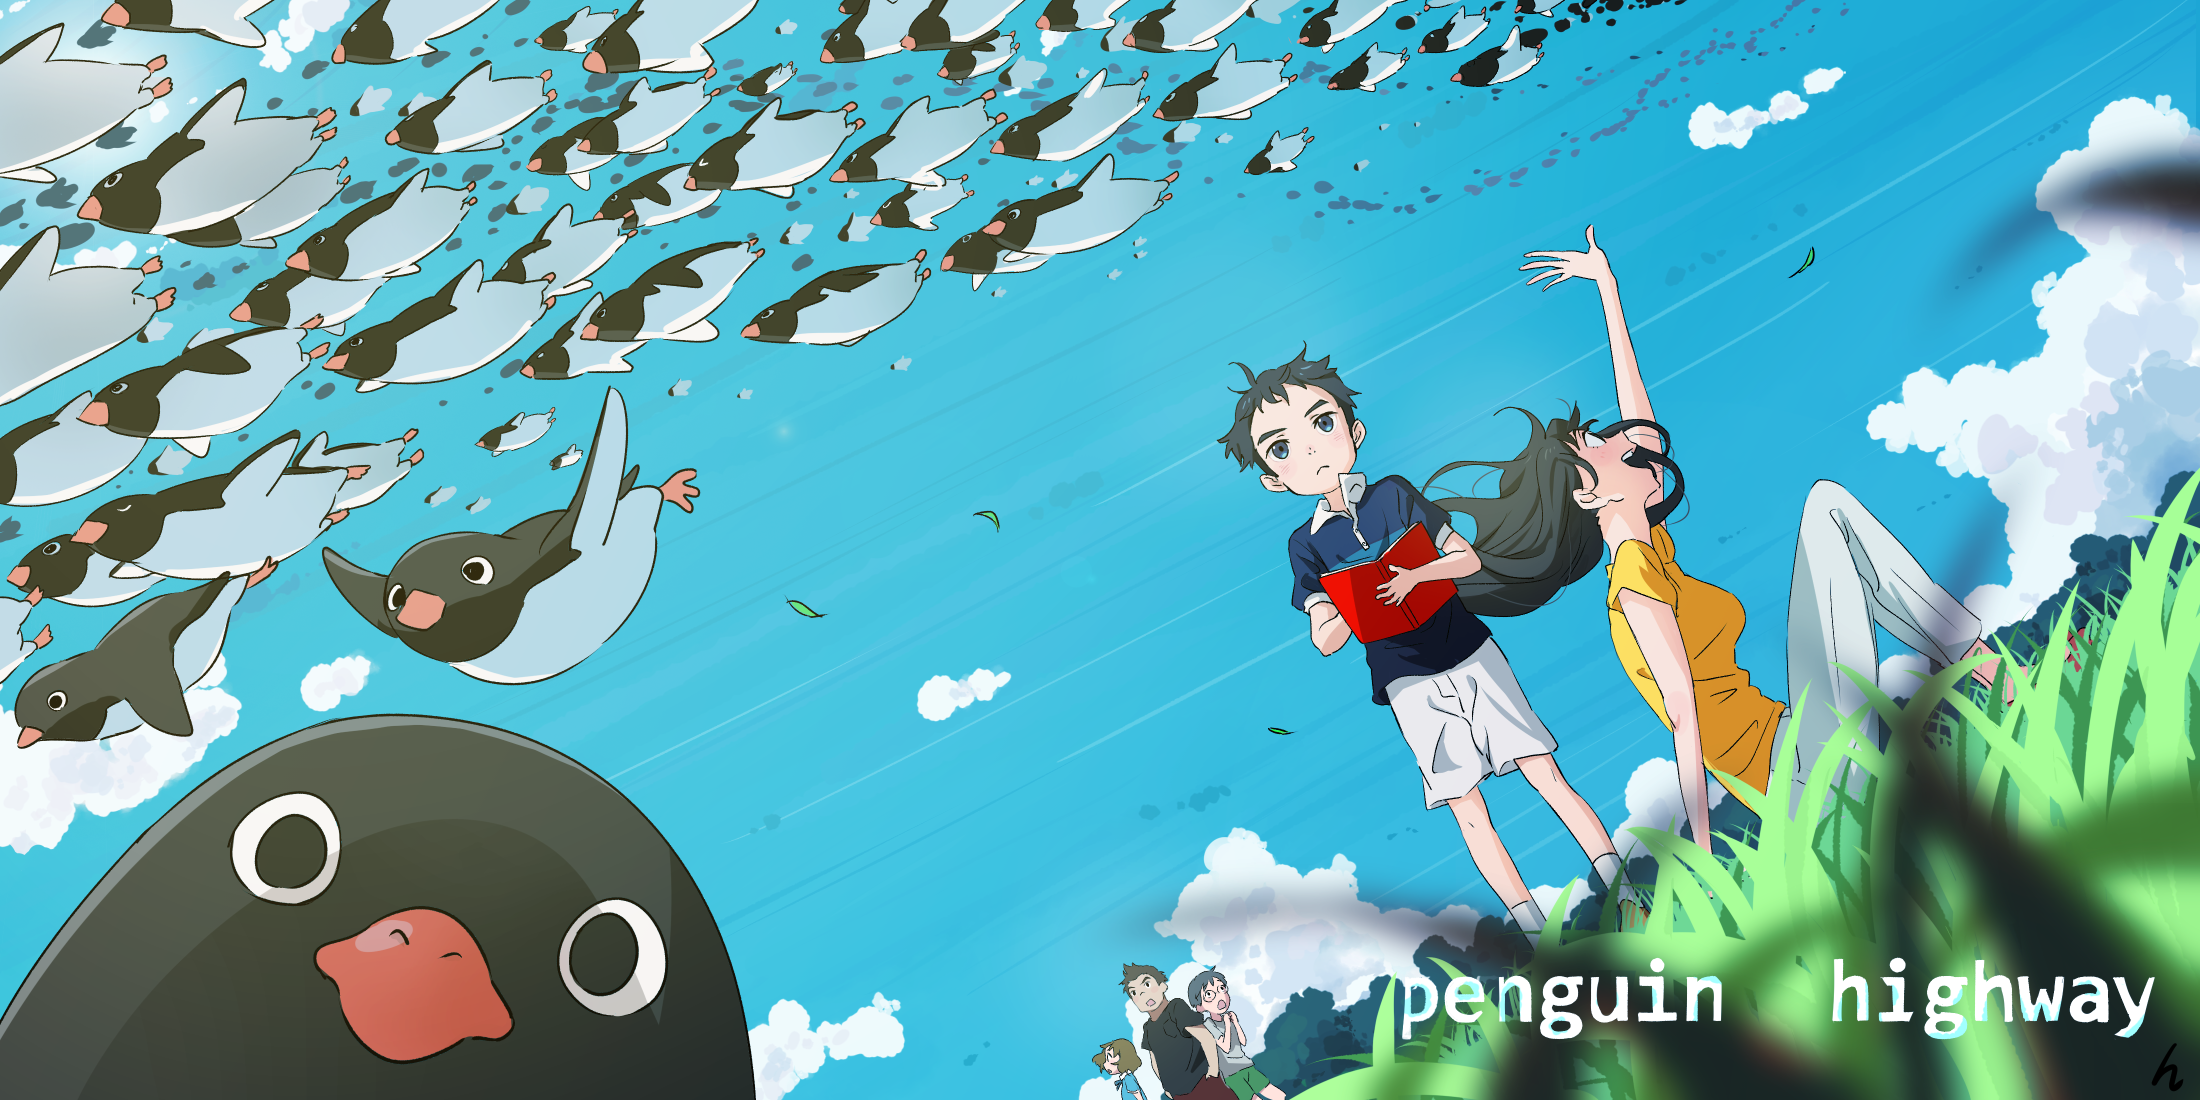 penguin_highway_full_2411952.png